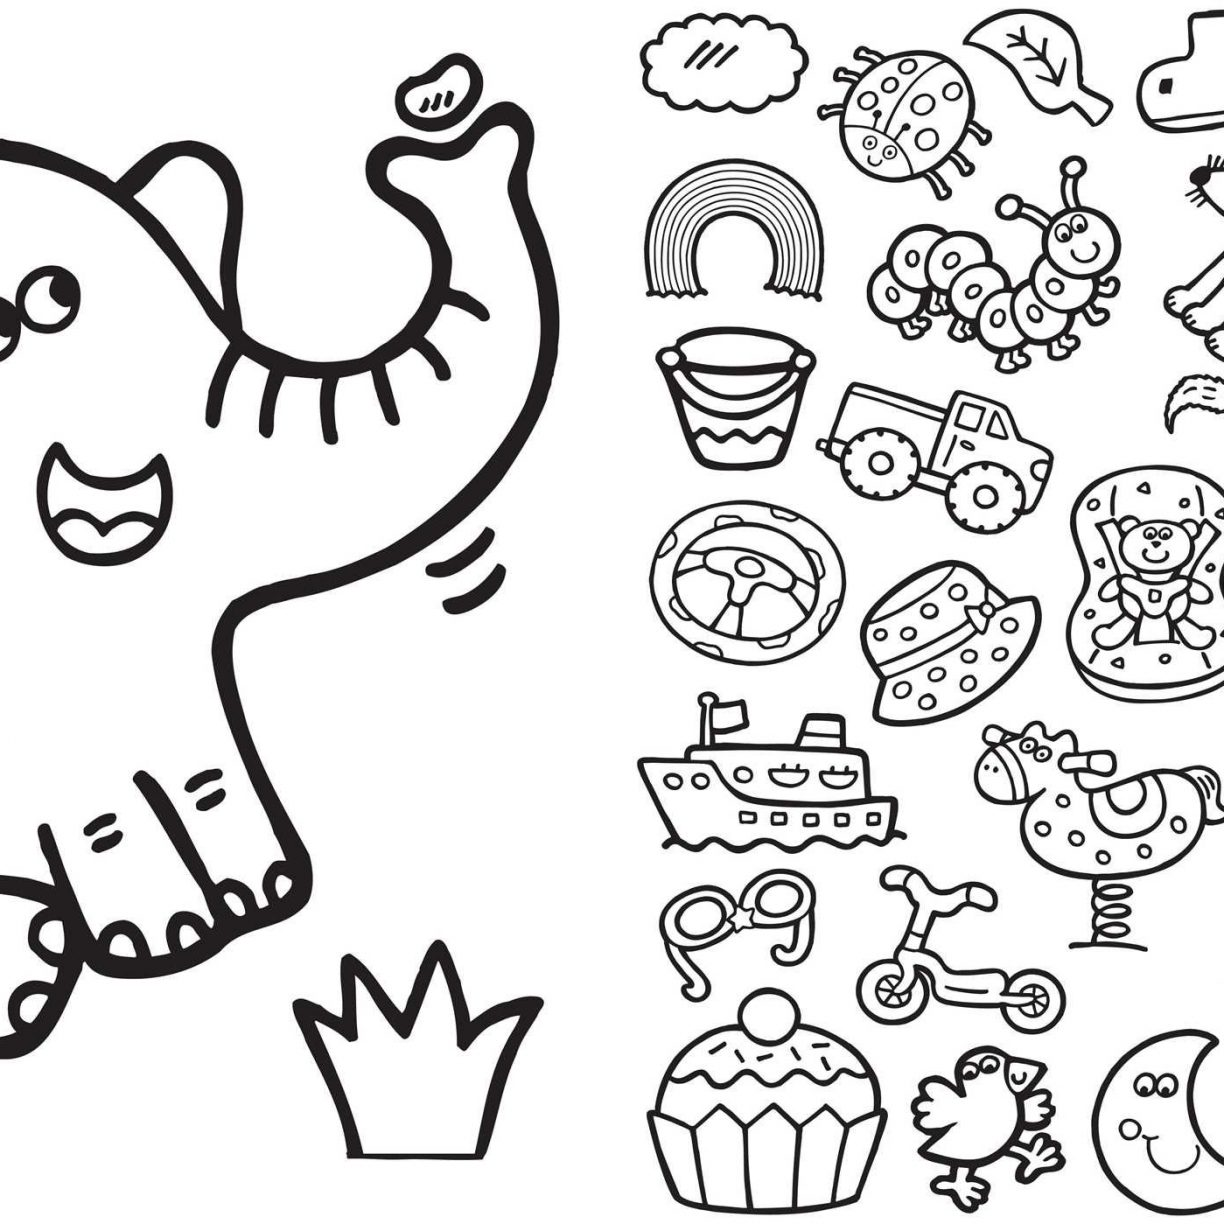 1224x1224 Printable Simple Coloring Pages For Kids Year Old Free Birthday